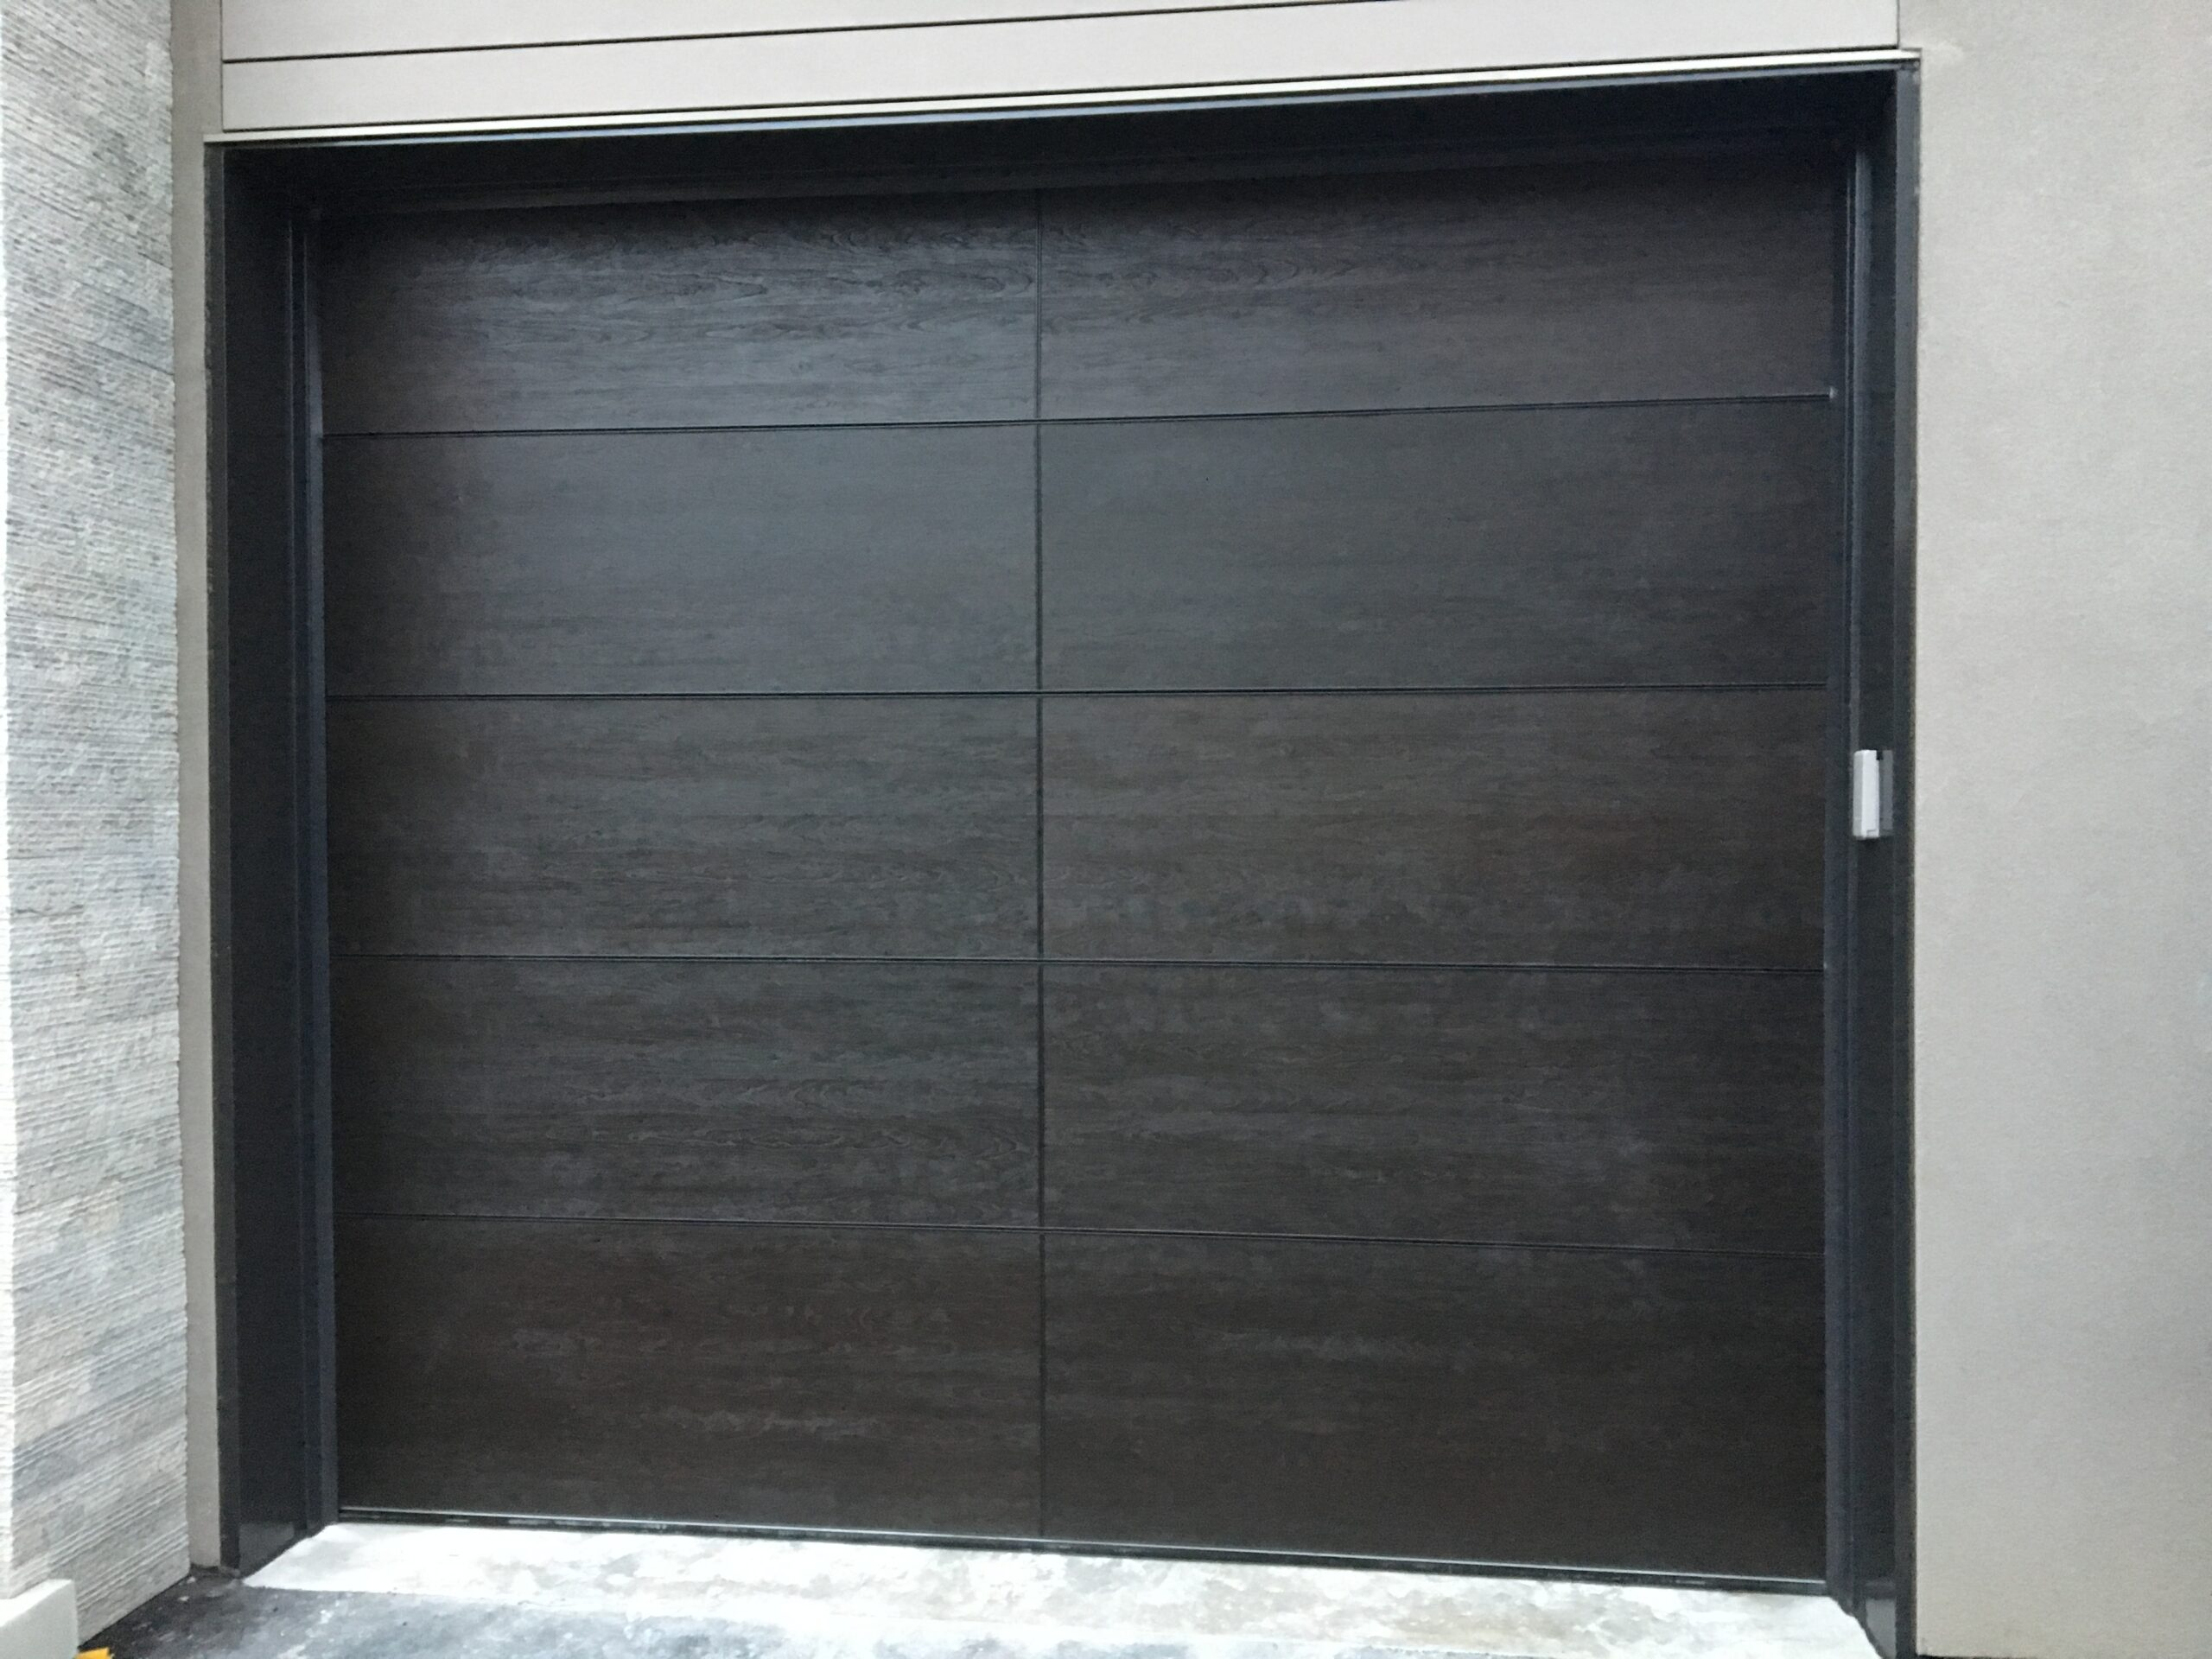 Modern Fibreglass Exterior Garage Door